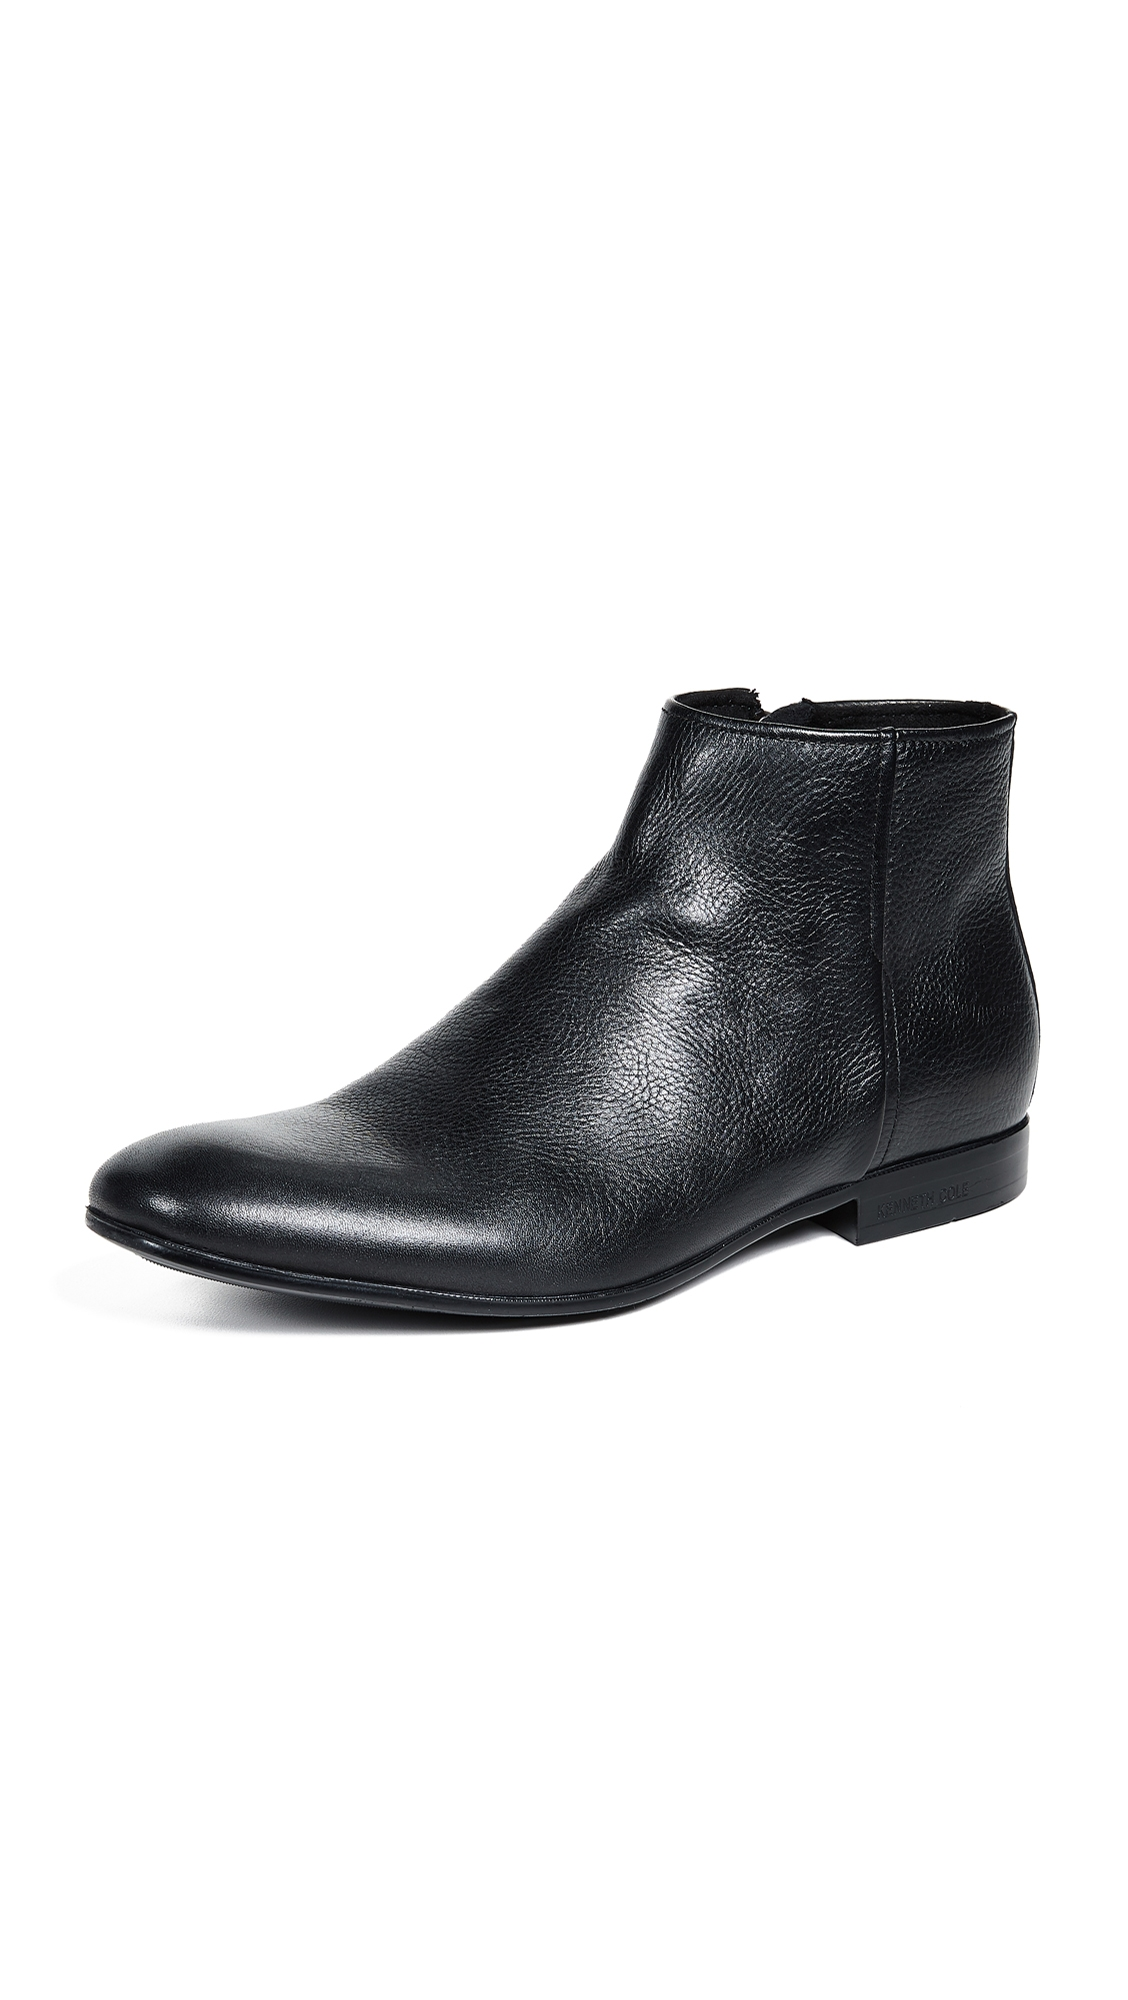 KENNETH COLE Men'S Mix Leather Zip Boots in Black